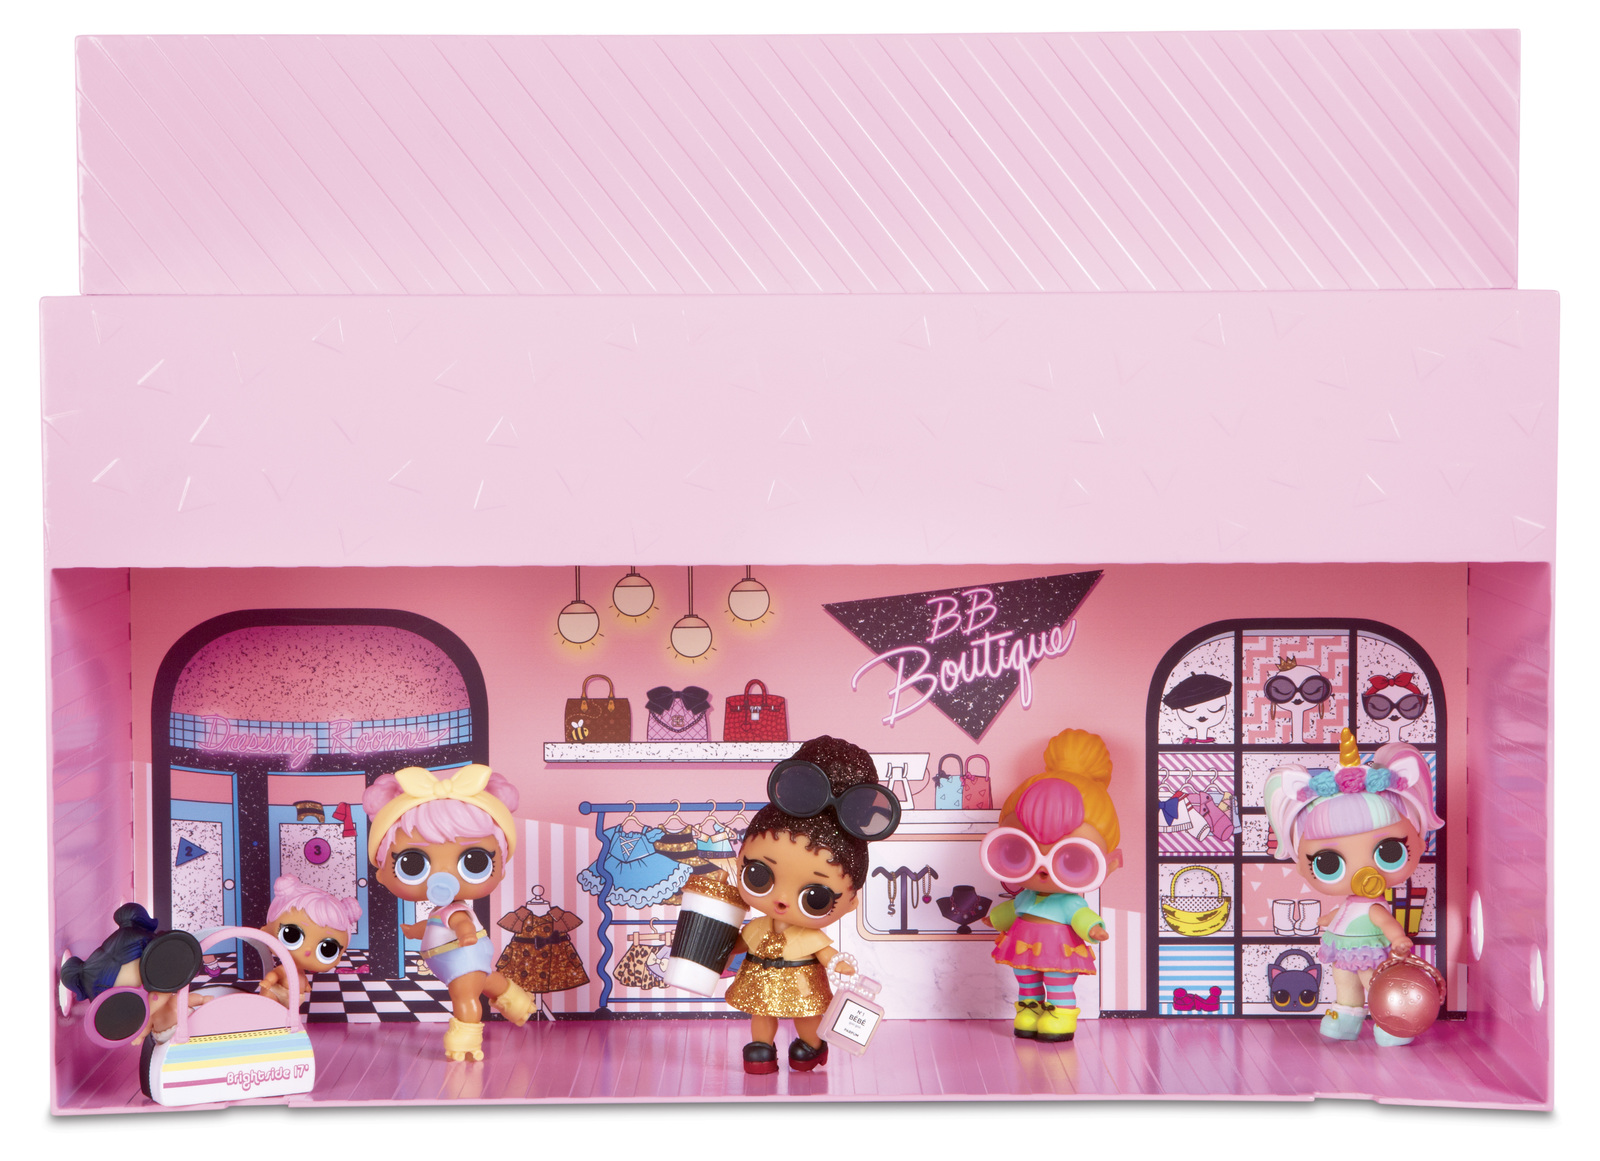 L O L Surprise Pop Up Store Playset Images At Mighty Ape Australia